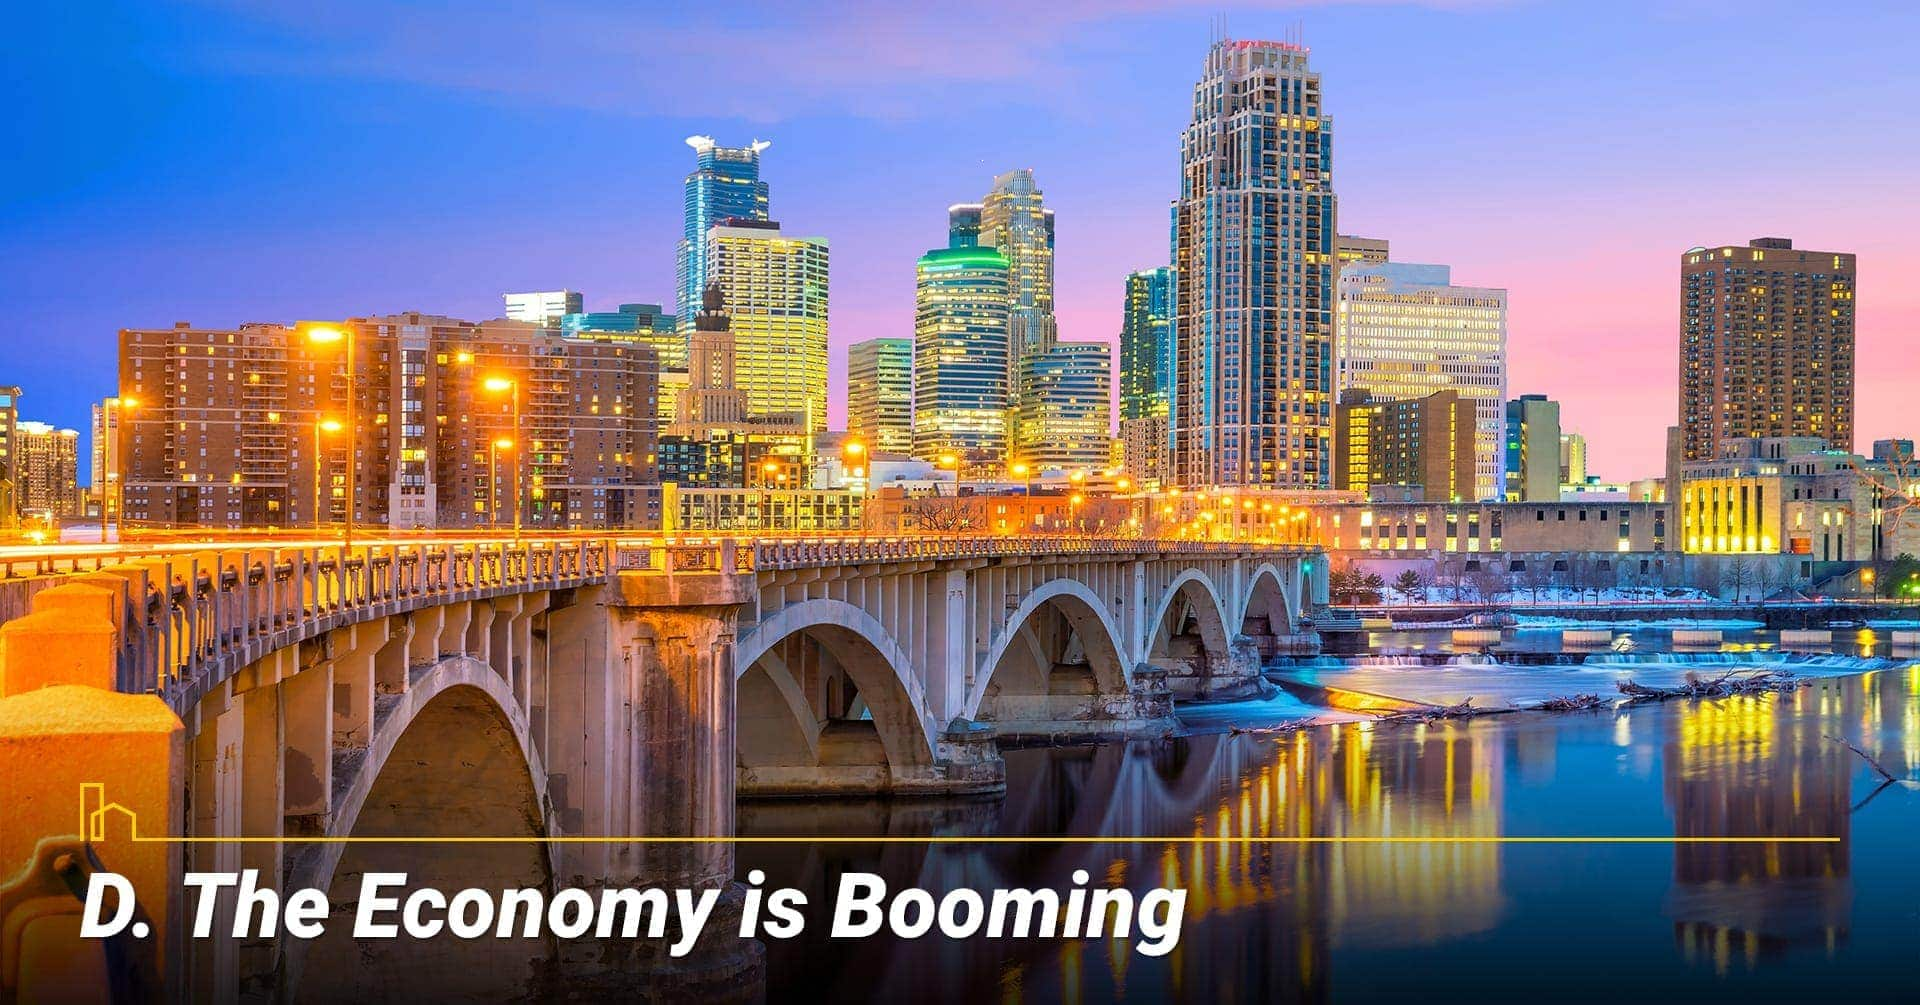 The Economy is Booming